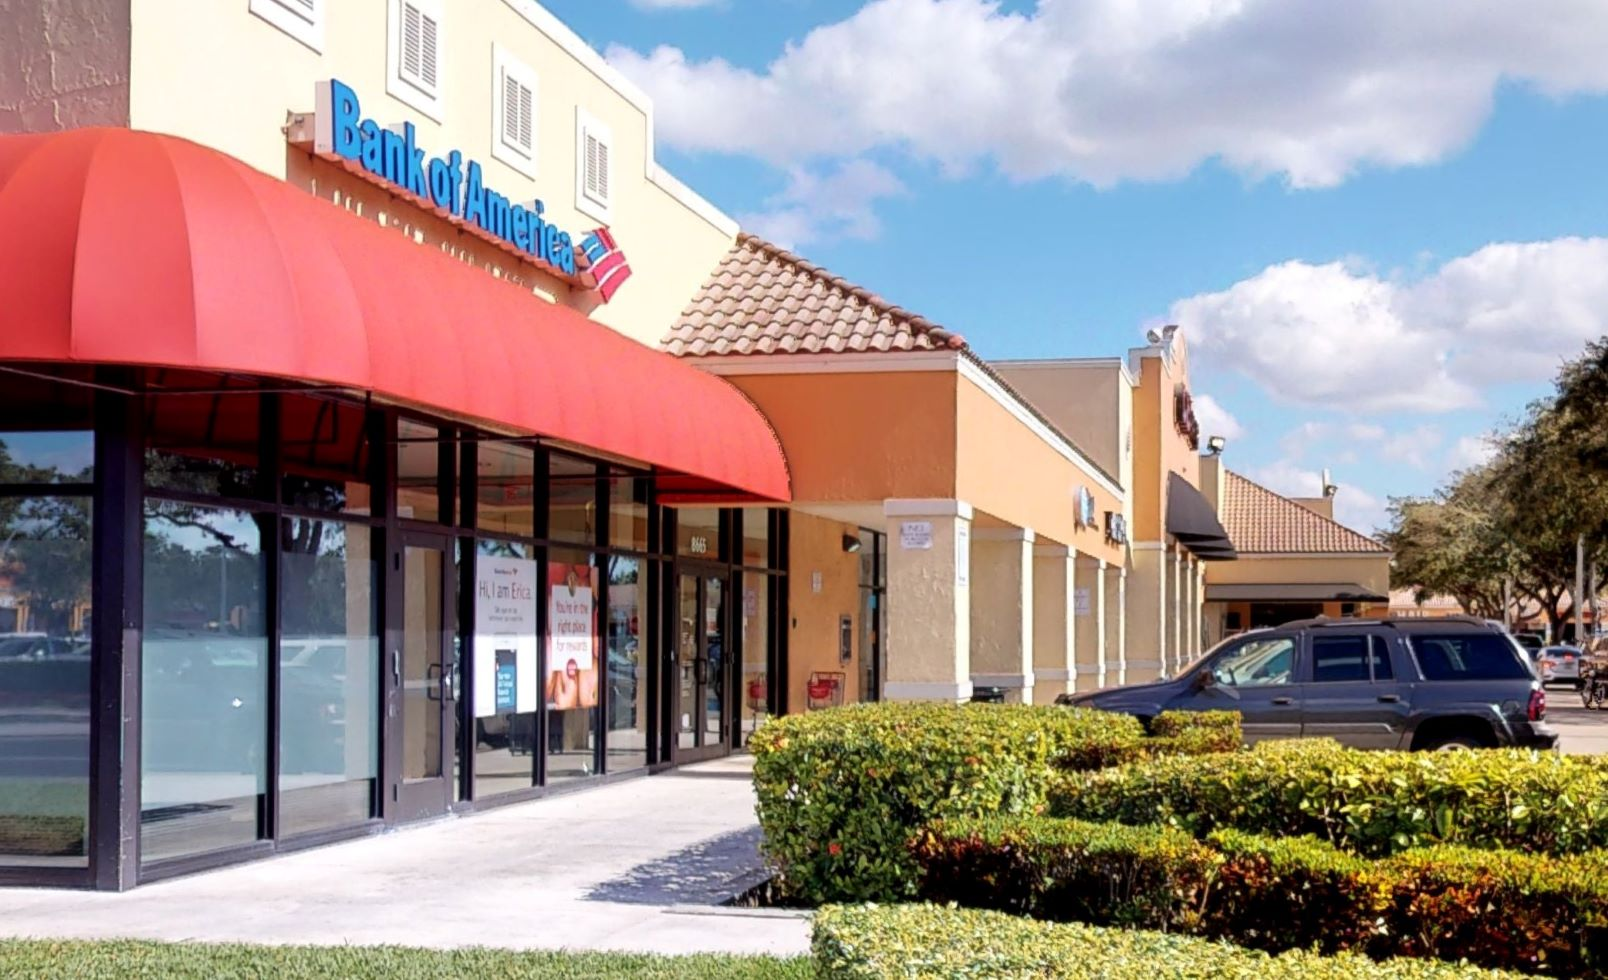 Bank of America financial center with walk-up ATM   8665 NW 186th St, Hialeah, FL 33015